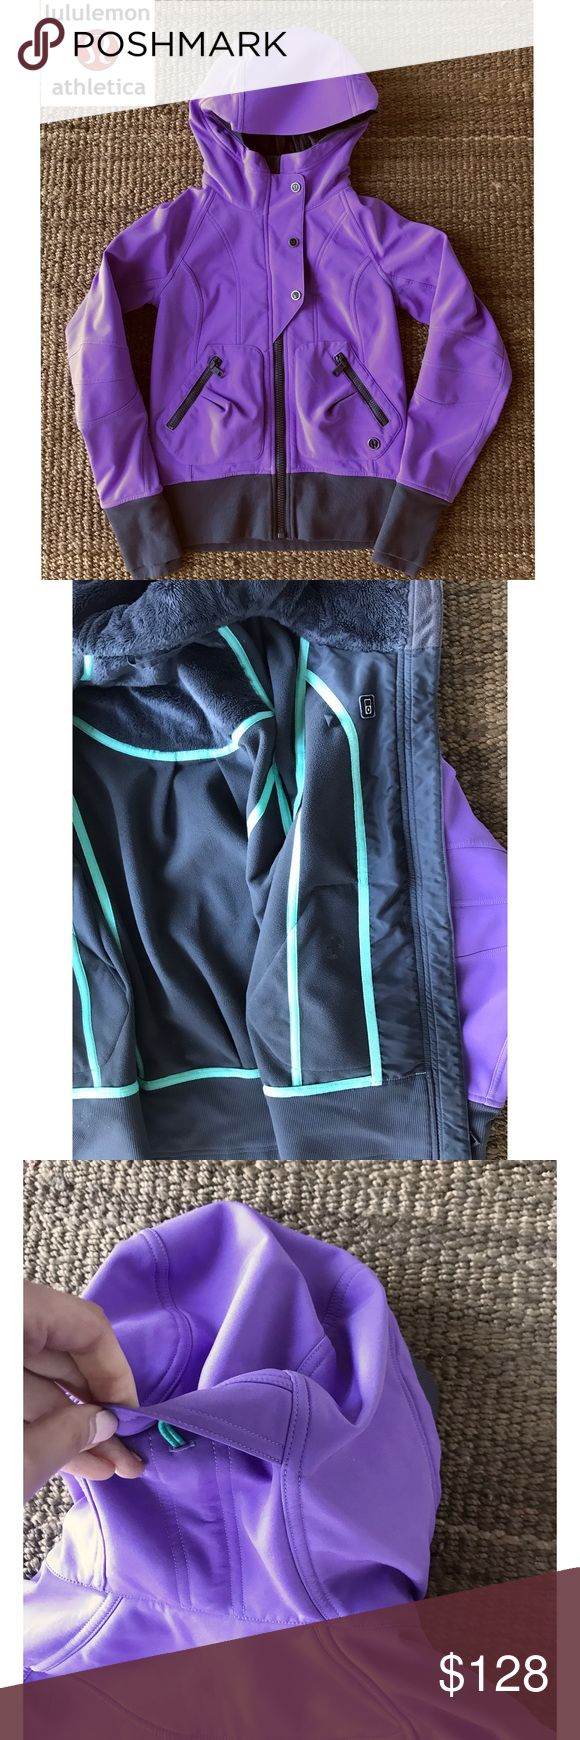 """Awesome Lululemon Hooded Zip Jacket Sz. 4 One of my favorite jackets in a gorgeous color! Furry lined inside with thick nylon shell that has some stretch. This jacket is definitely meant to keep you warm! This hooded jacket feathers multiple pockets, including on perfect for iPhone and earbuds. Zipper front closure which can be reinforced by a button flap on the front. The hood has elastic so you can make tighter or looser and it has thumb holes. Sz. 4 (Bust is 18.5"""" and arm to sleeve is…"""